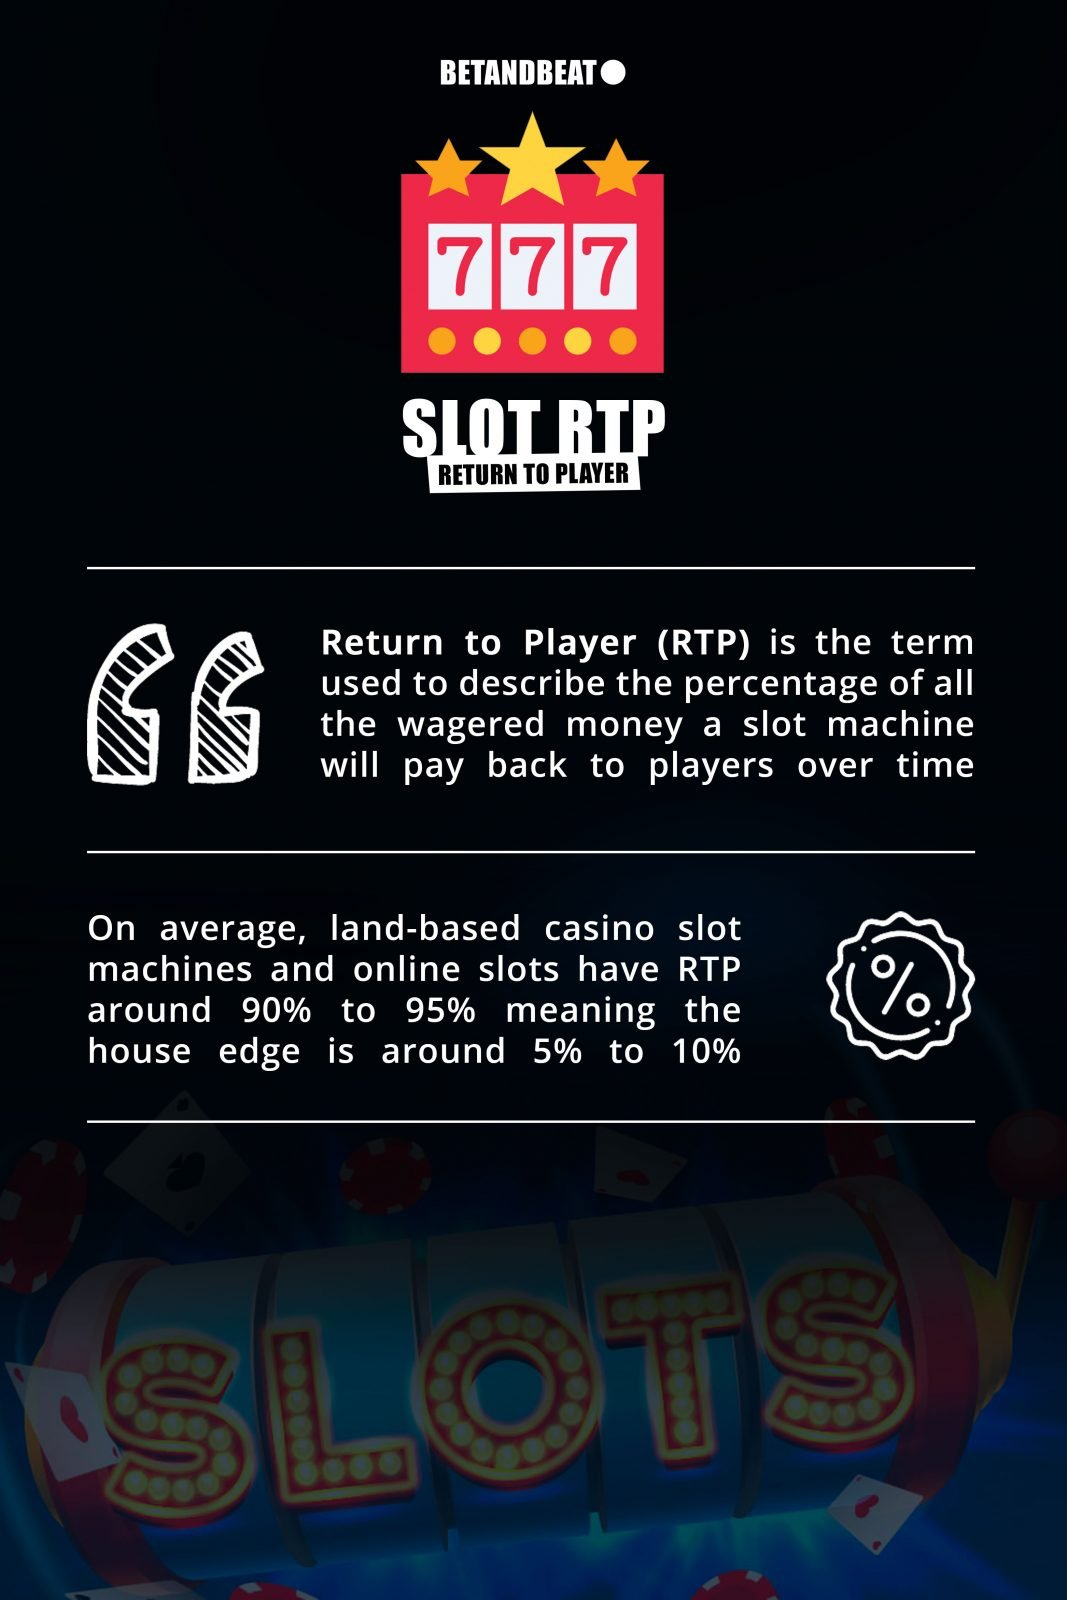 slot rtp (return to player in slots)